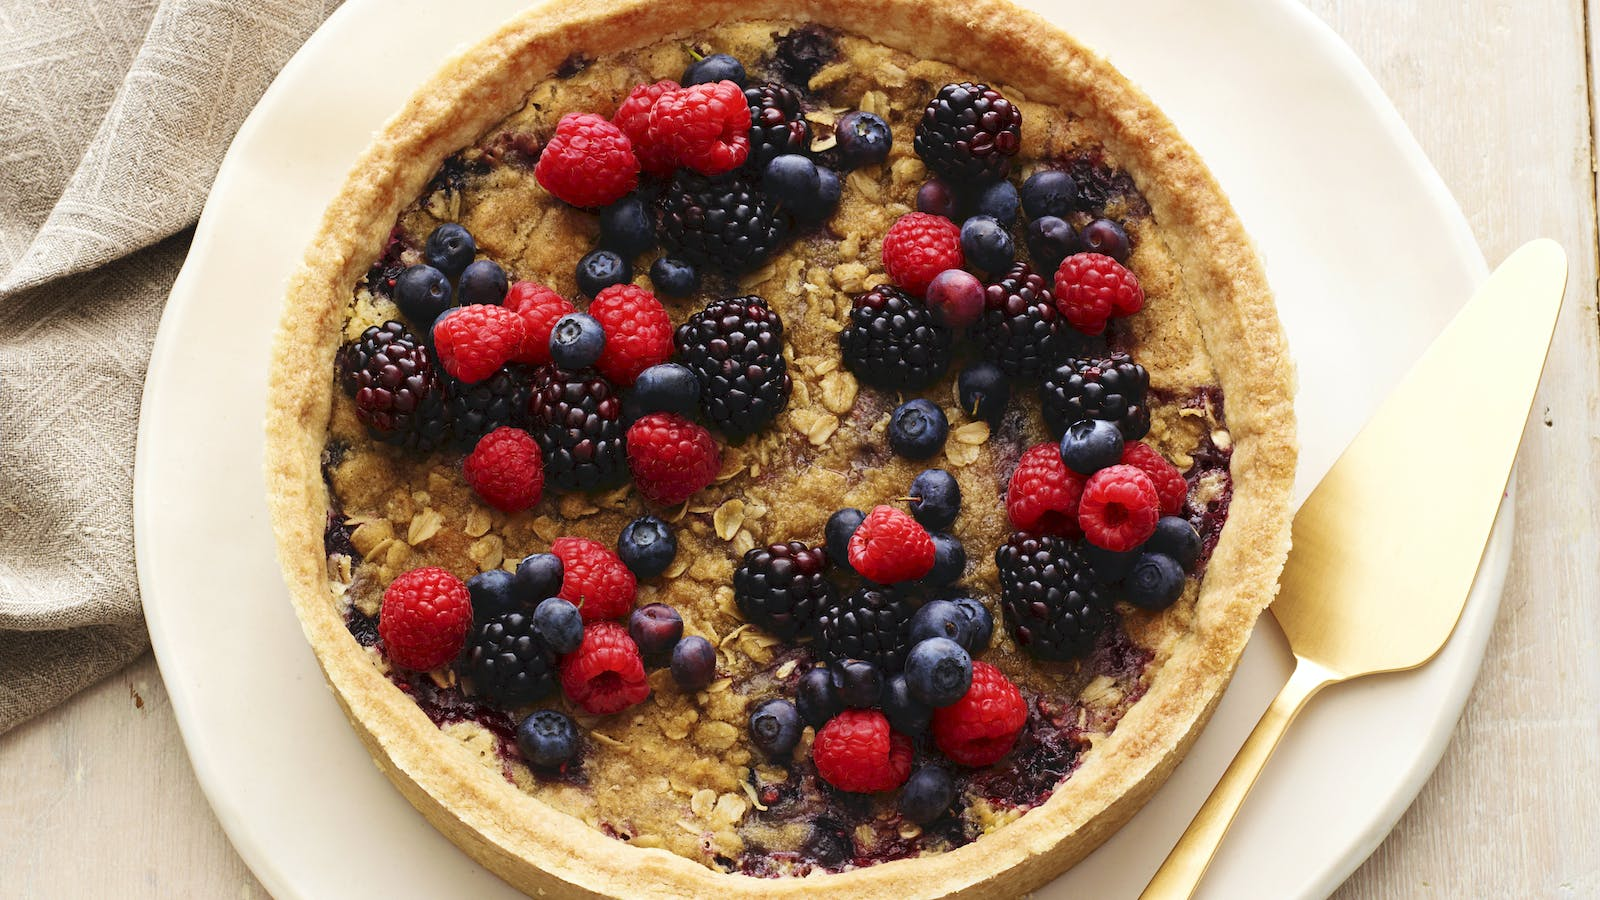 Mixed Berry Tart with Oatmeal Streusel